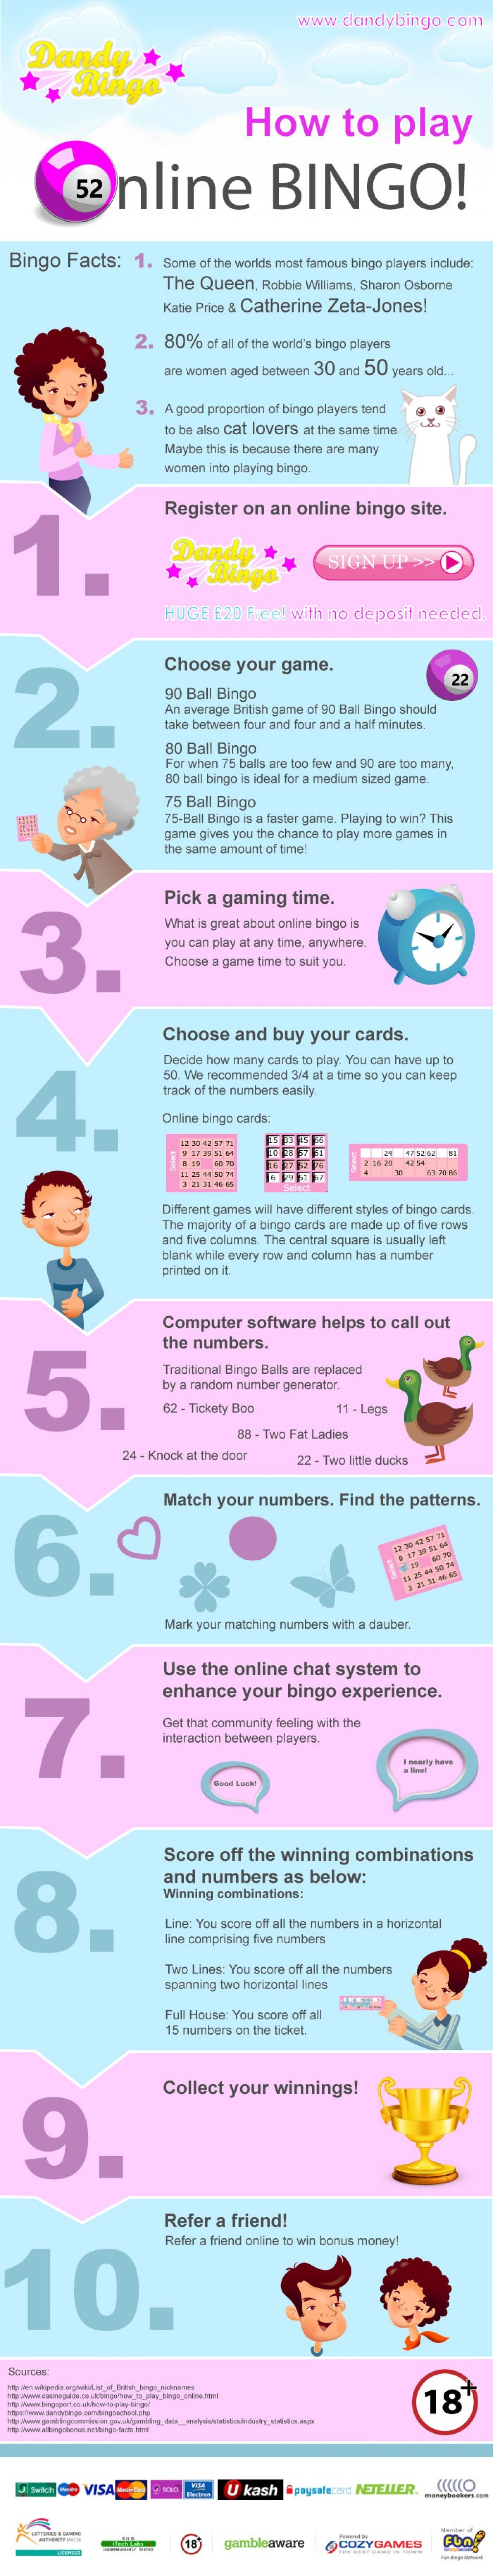 How To Play Online Bingo Infographic